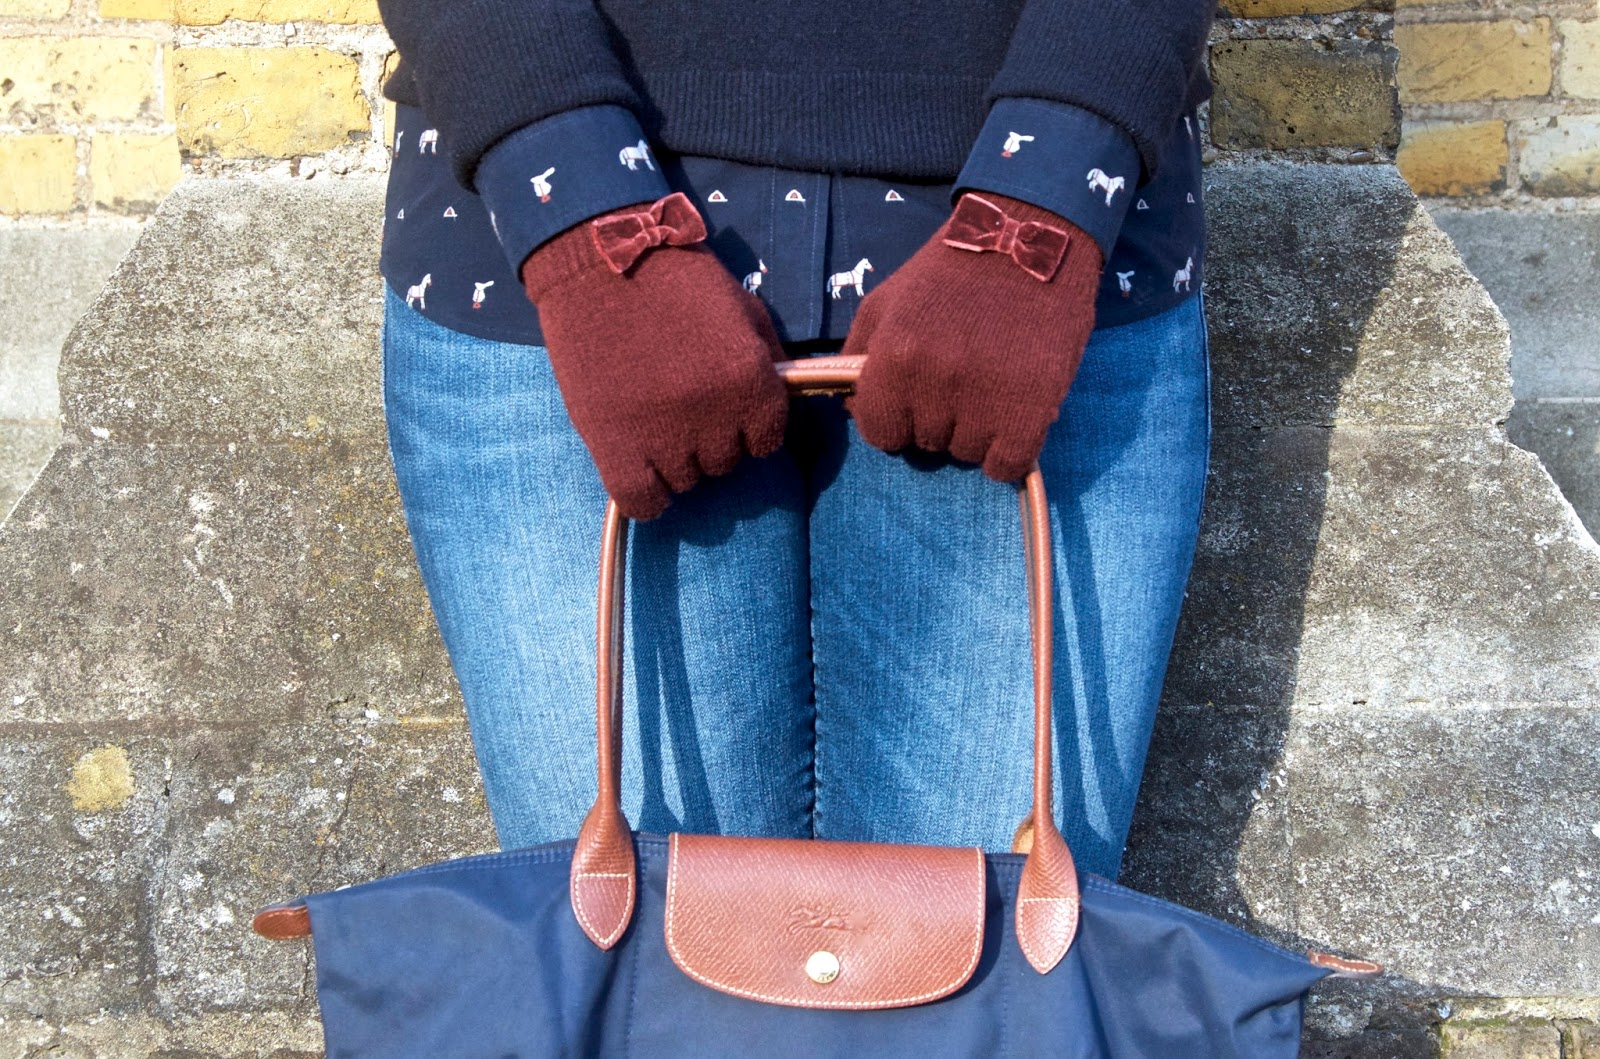 Maroon bow gloves, navy bag, horse print shirt and navy sweater